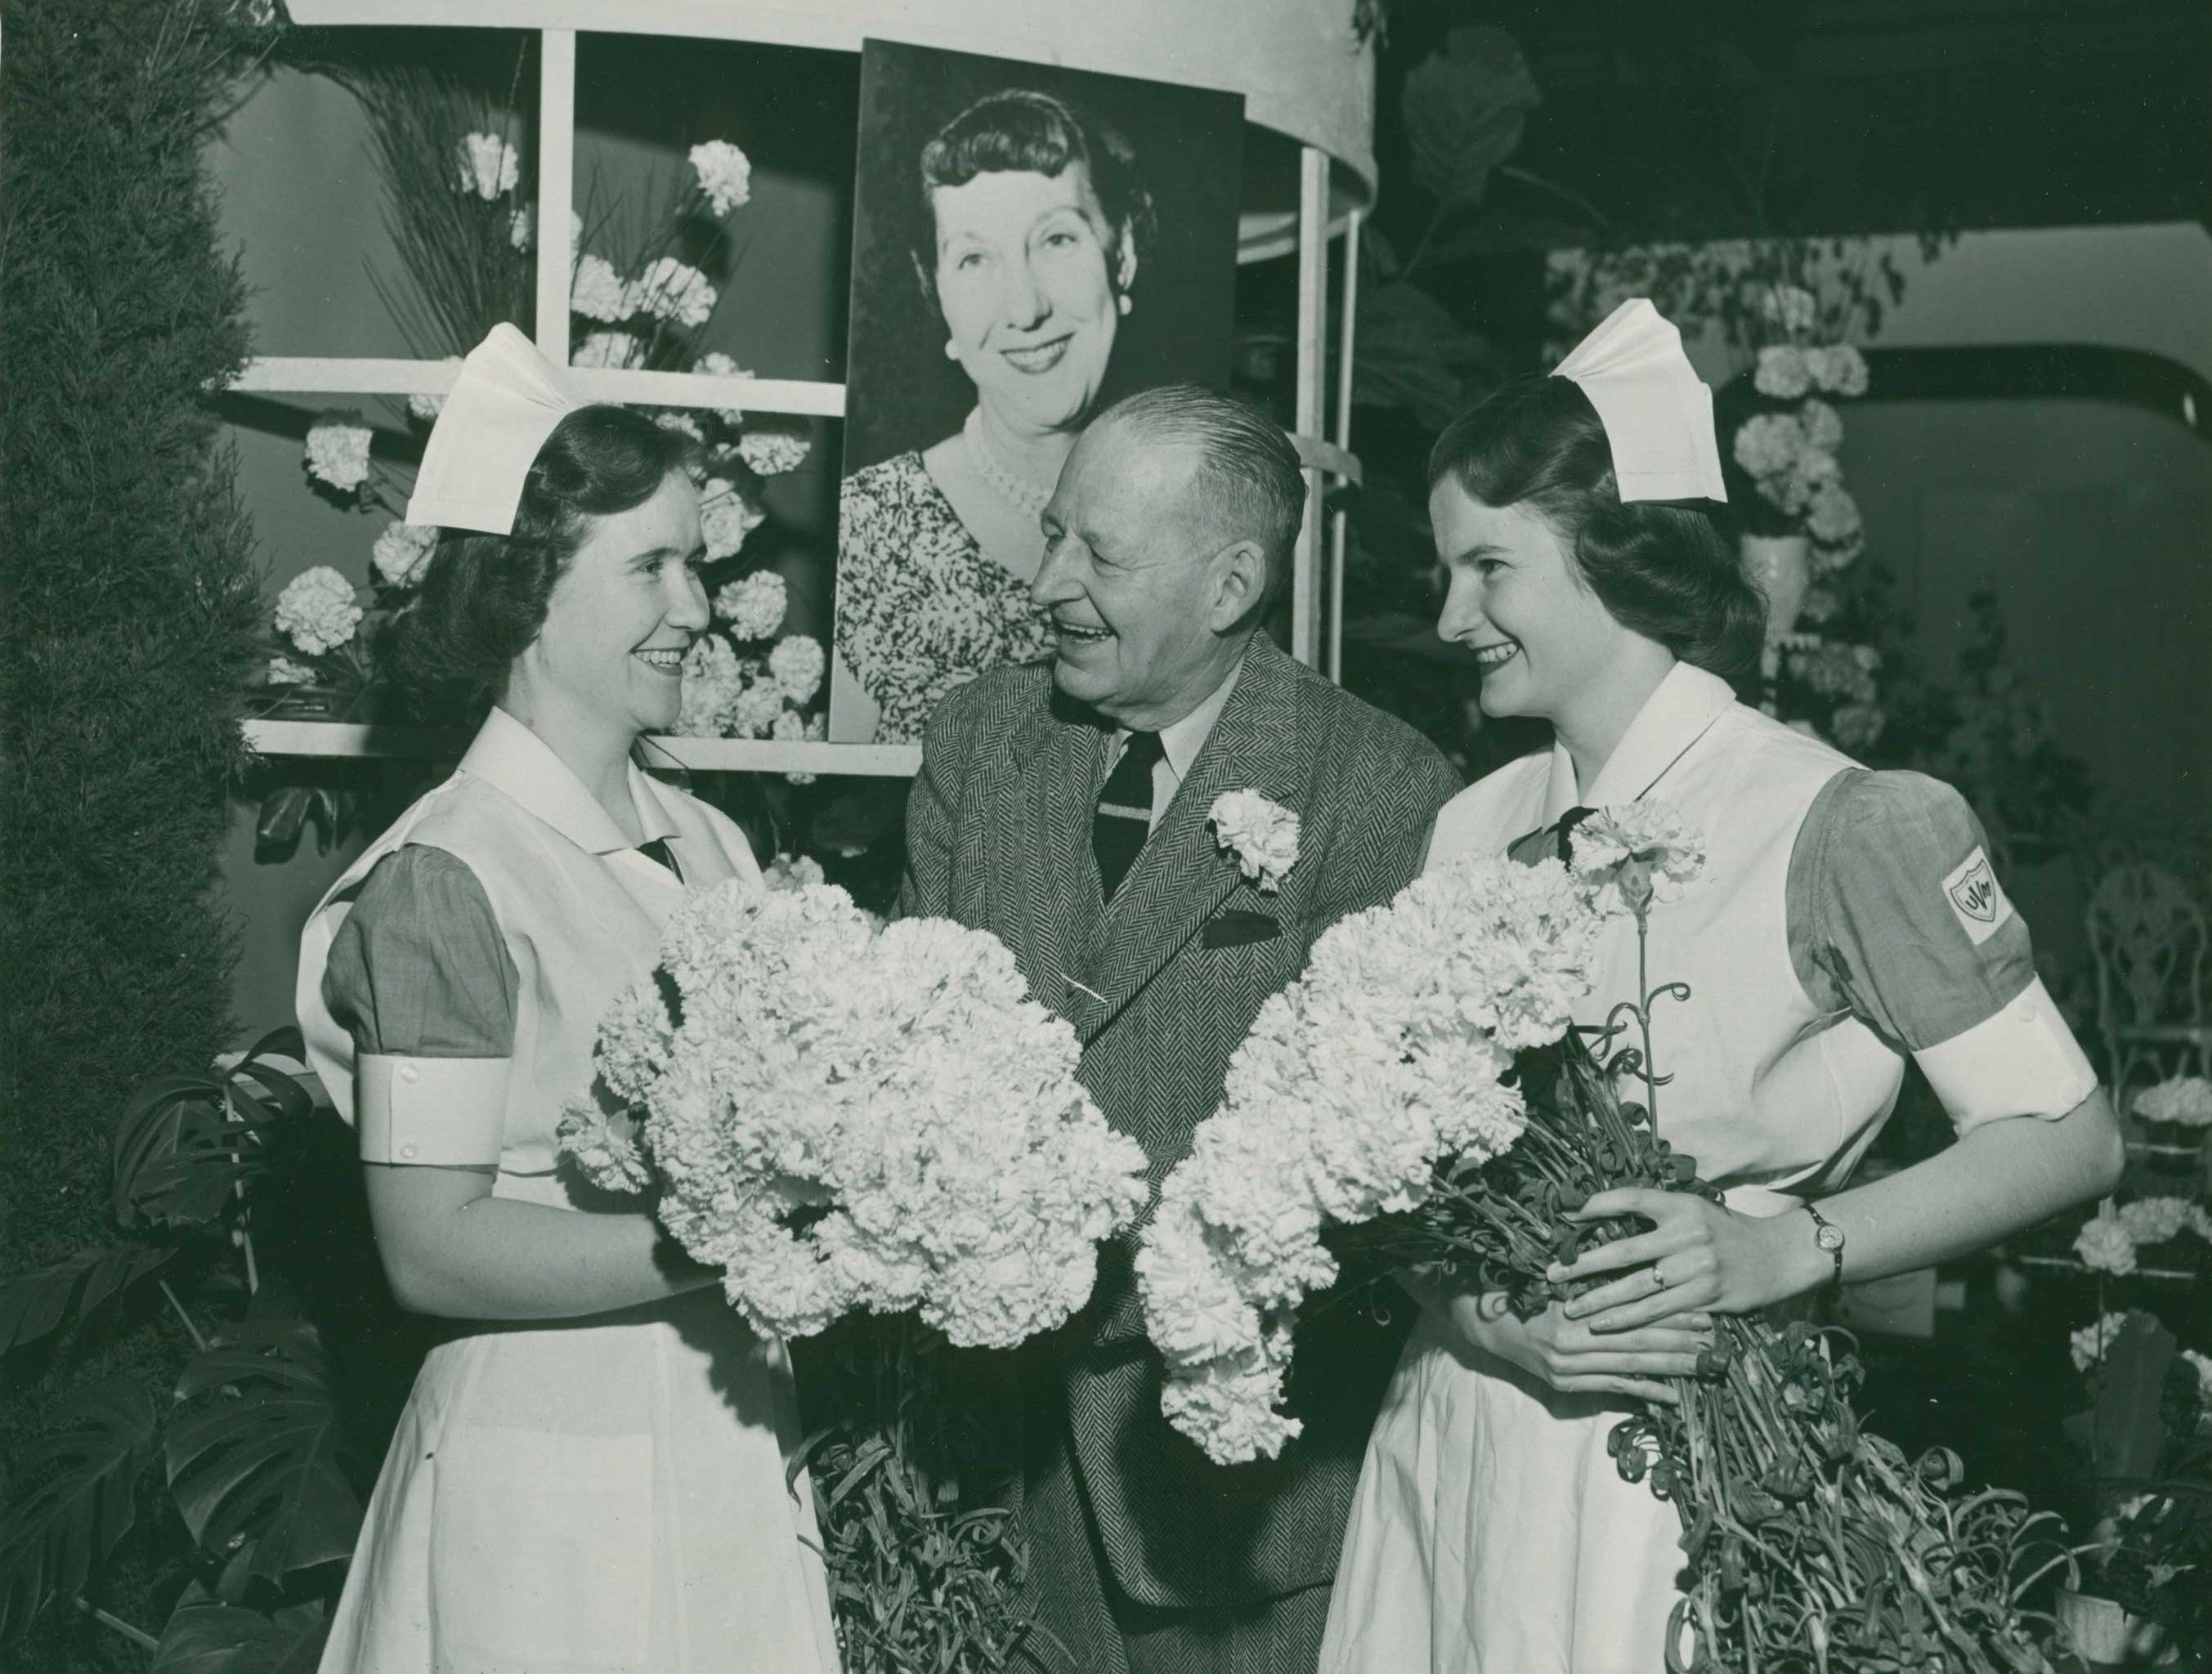 Carnations are gathered for Mamie Eisenhower at the 1953 Philadelphia Flower Show.